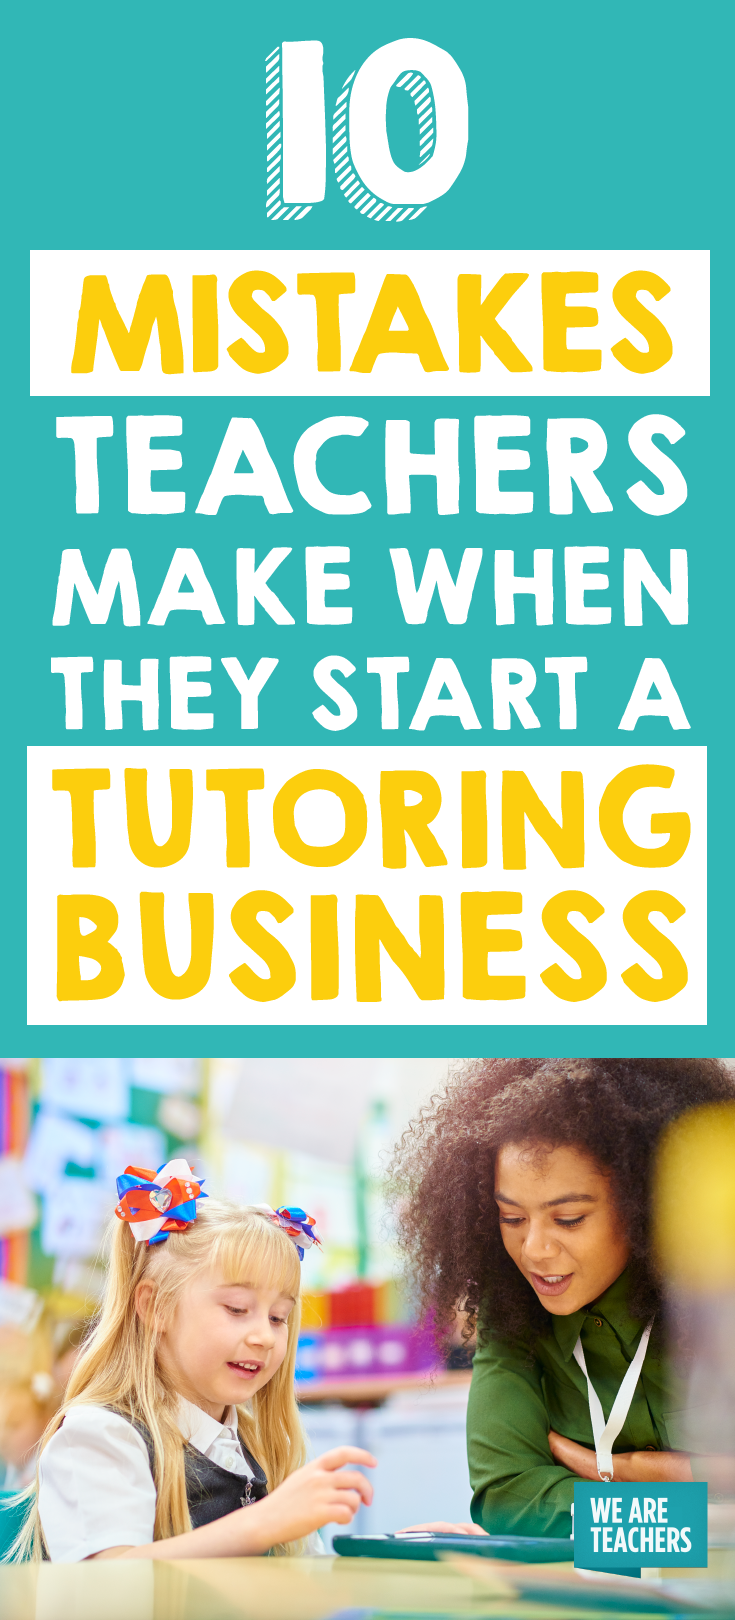 10 mistakes teachers make when they start a tutoring business what advice would you give to teachers who want to start a tutoring business colourmoves